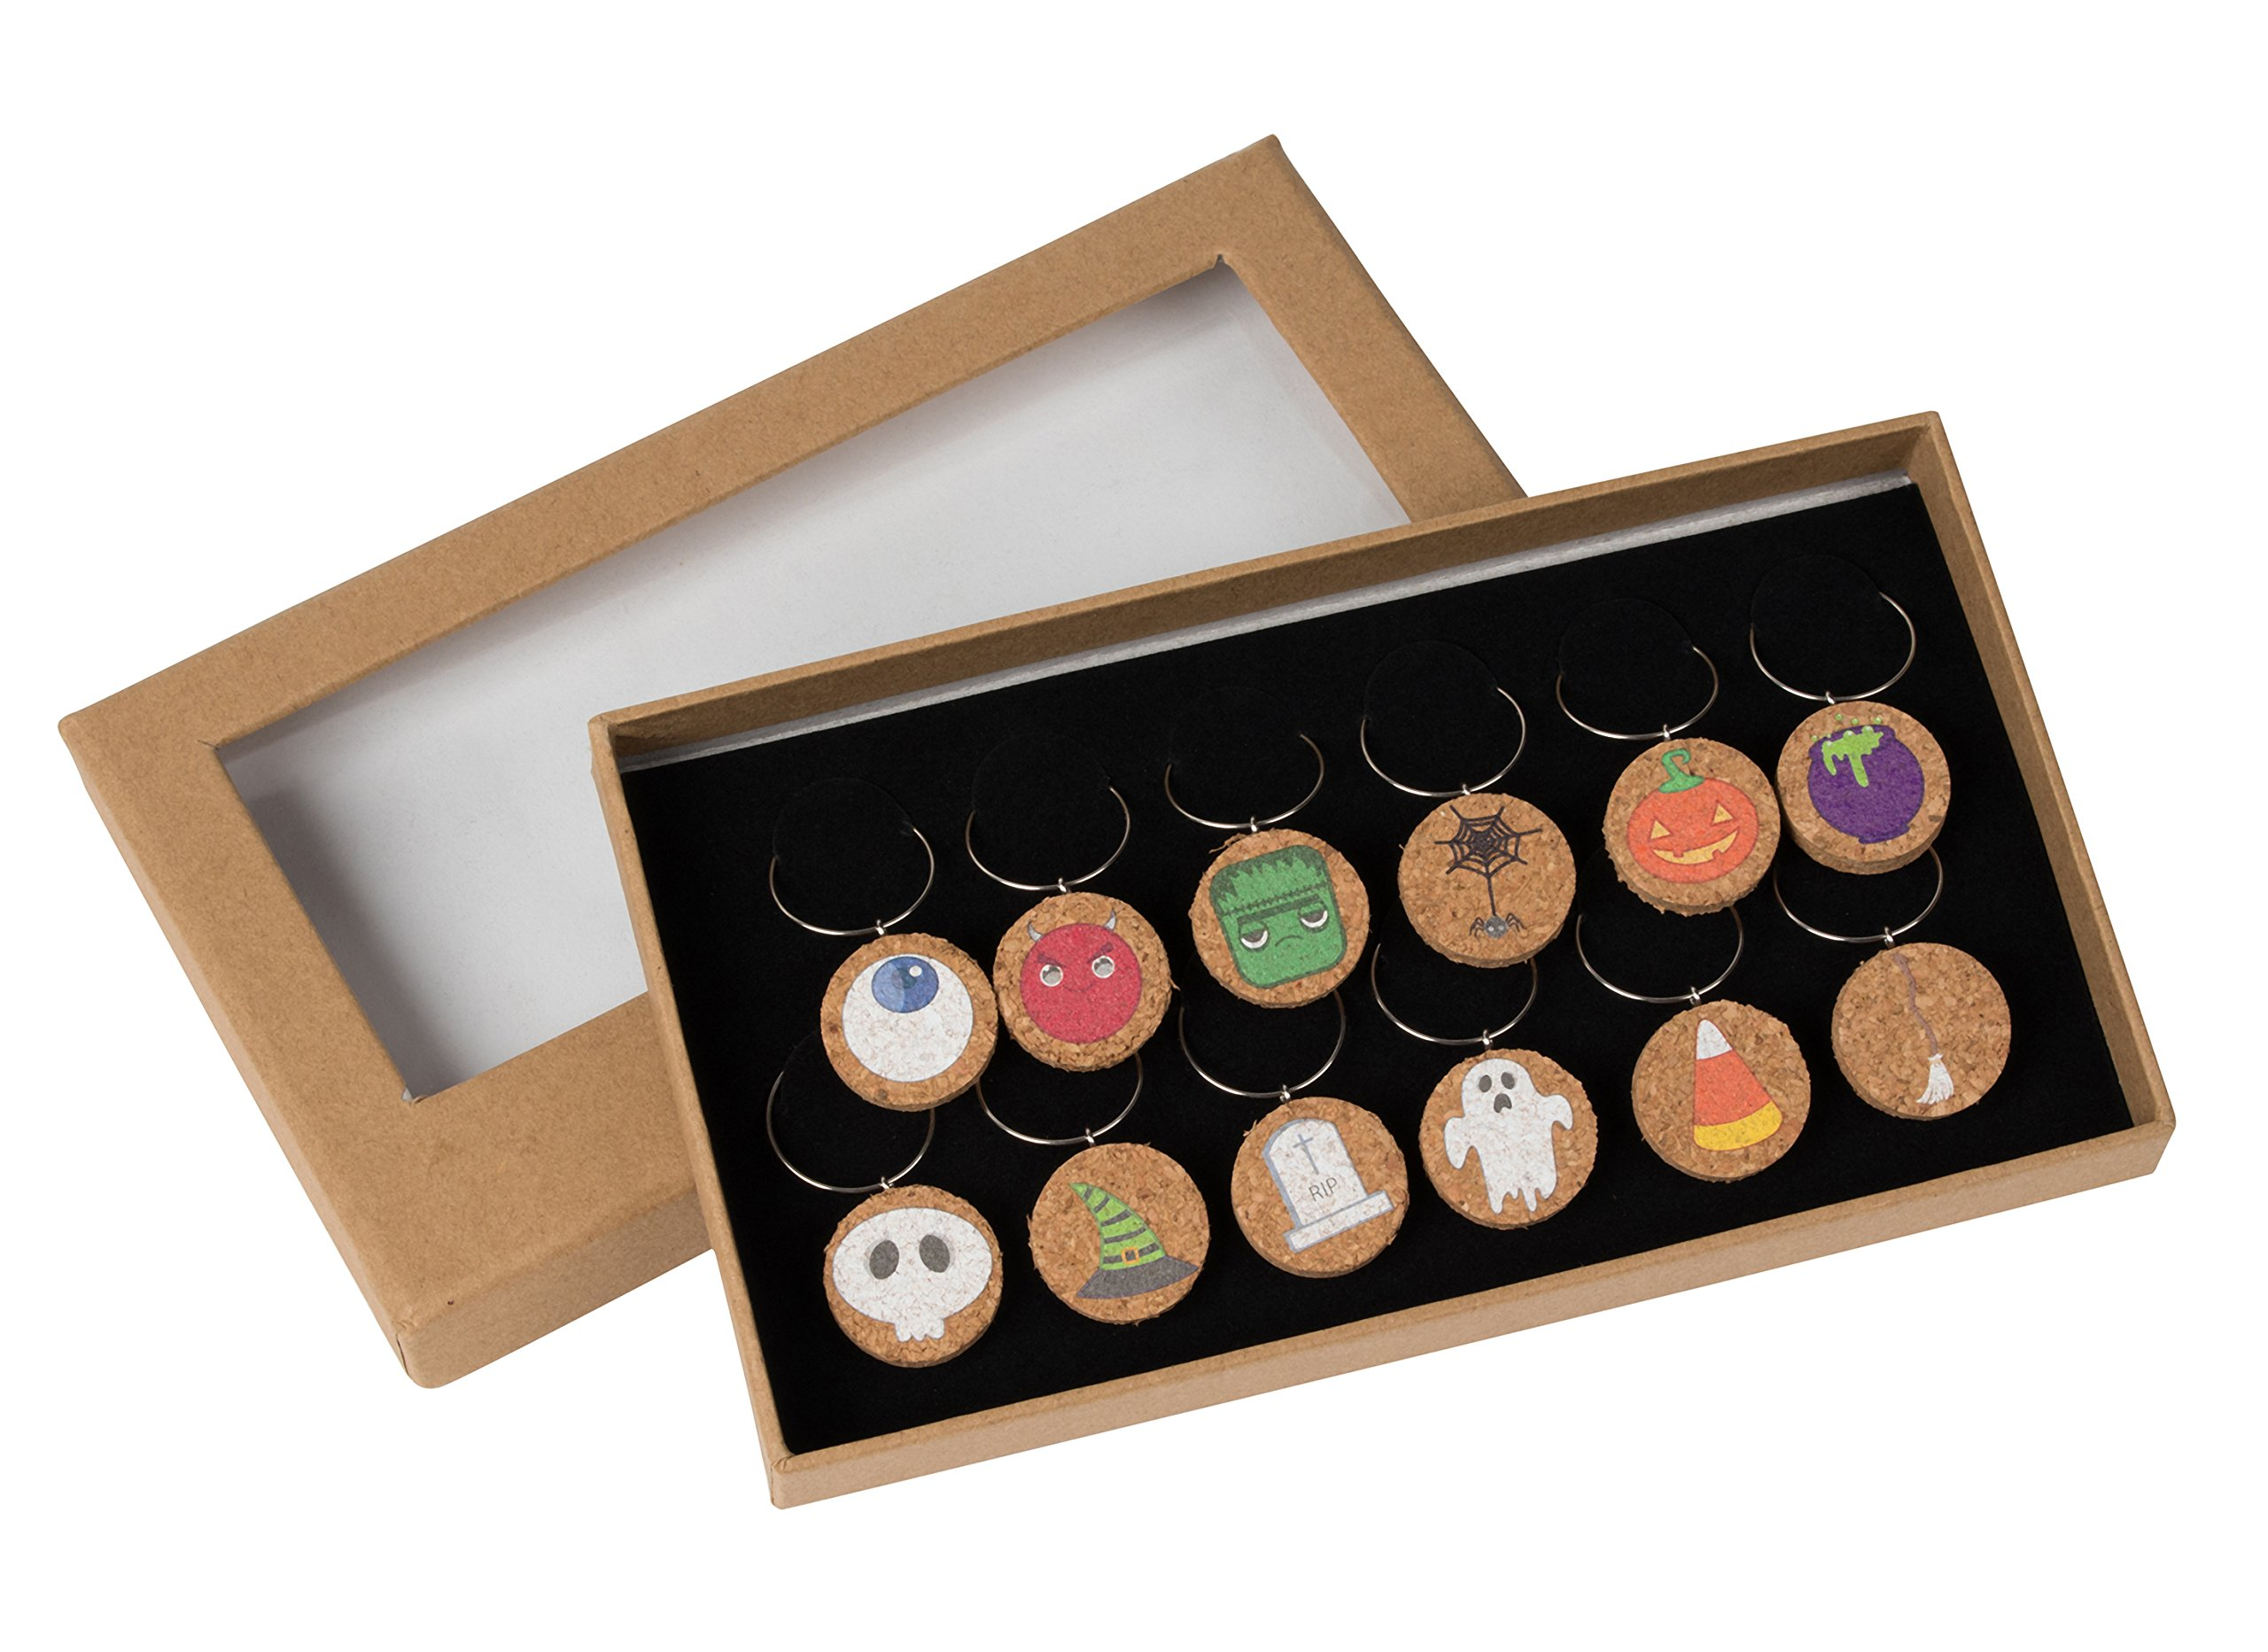 Wine Glass Charms - 12-Piece Halloween Designs Wine Charm Drink Markers - Natural Cork Halloween Themed Wine Glass Tags Decorations for Parties, Gatherings, Reunions by Juvale